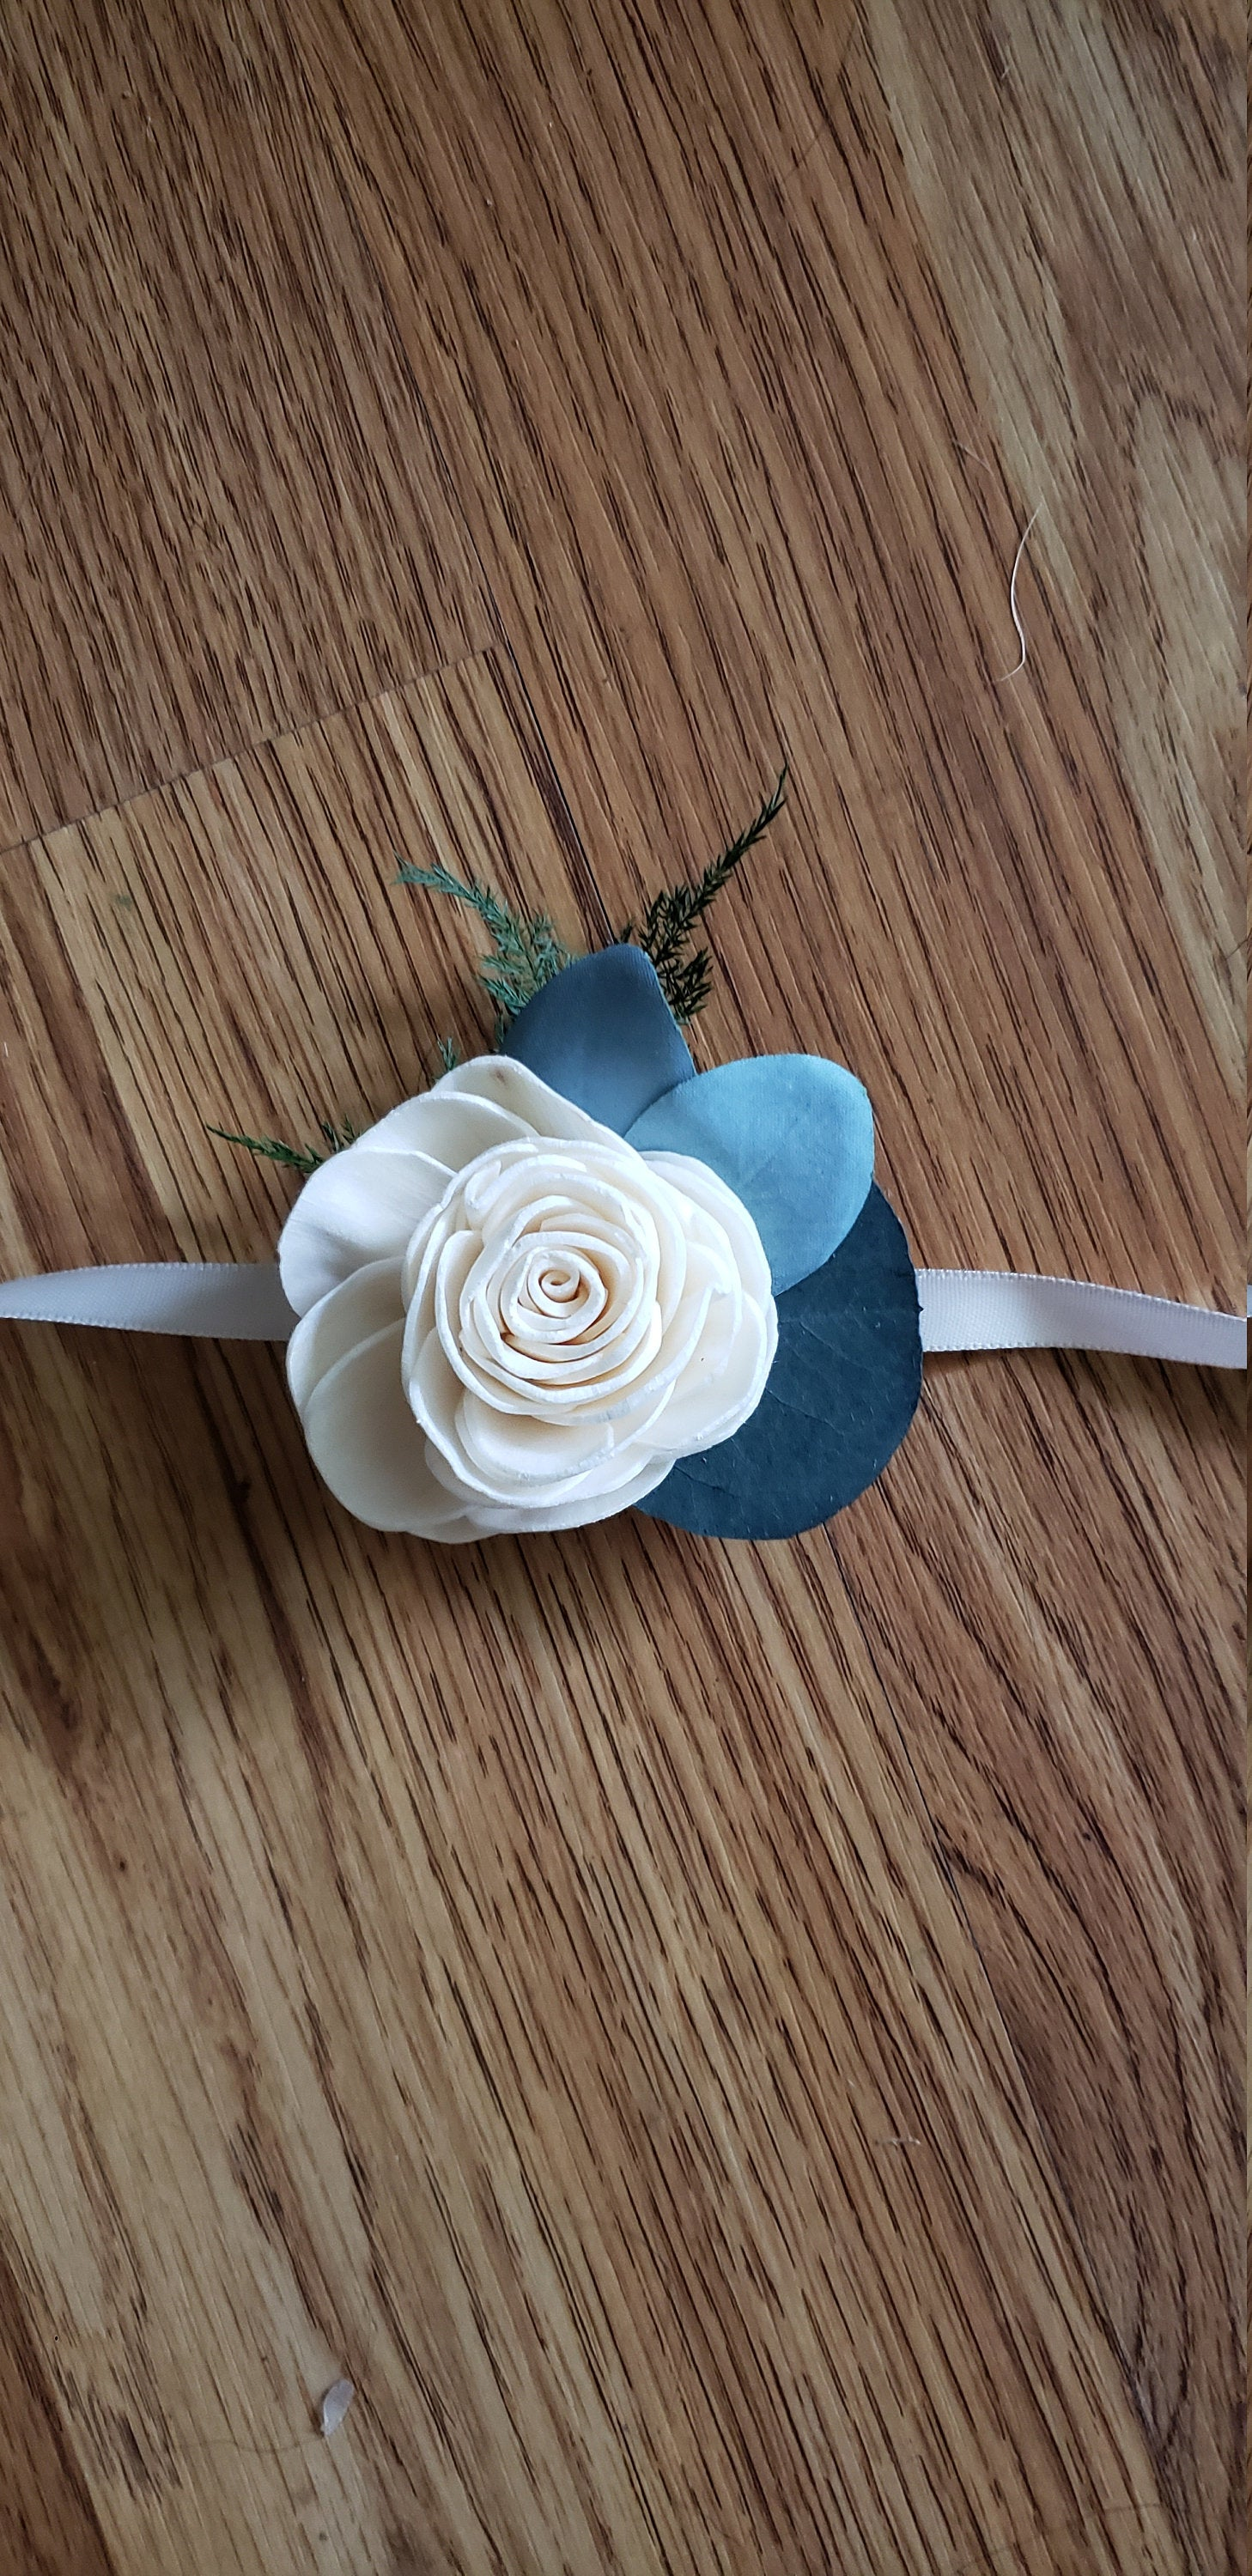 Rose and Eucalyptus Wrist Corsage